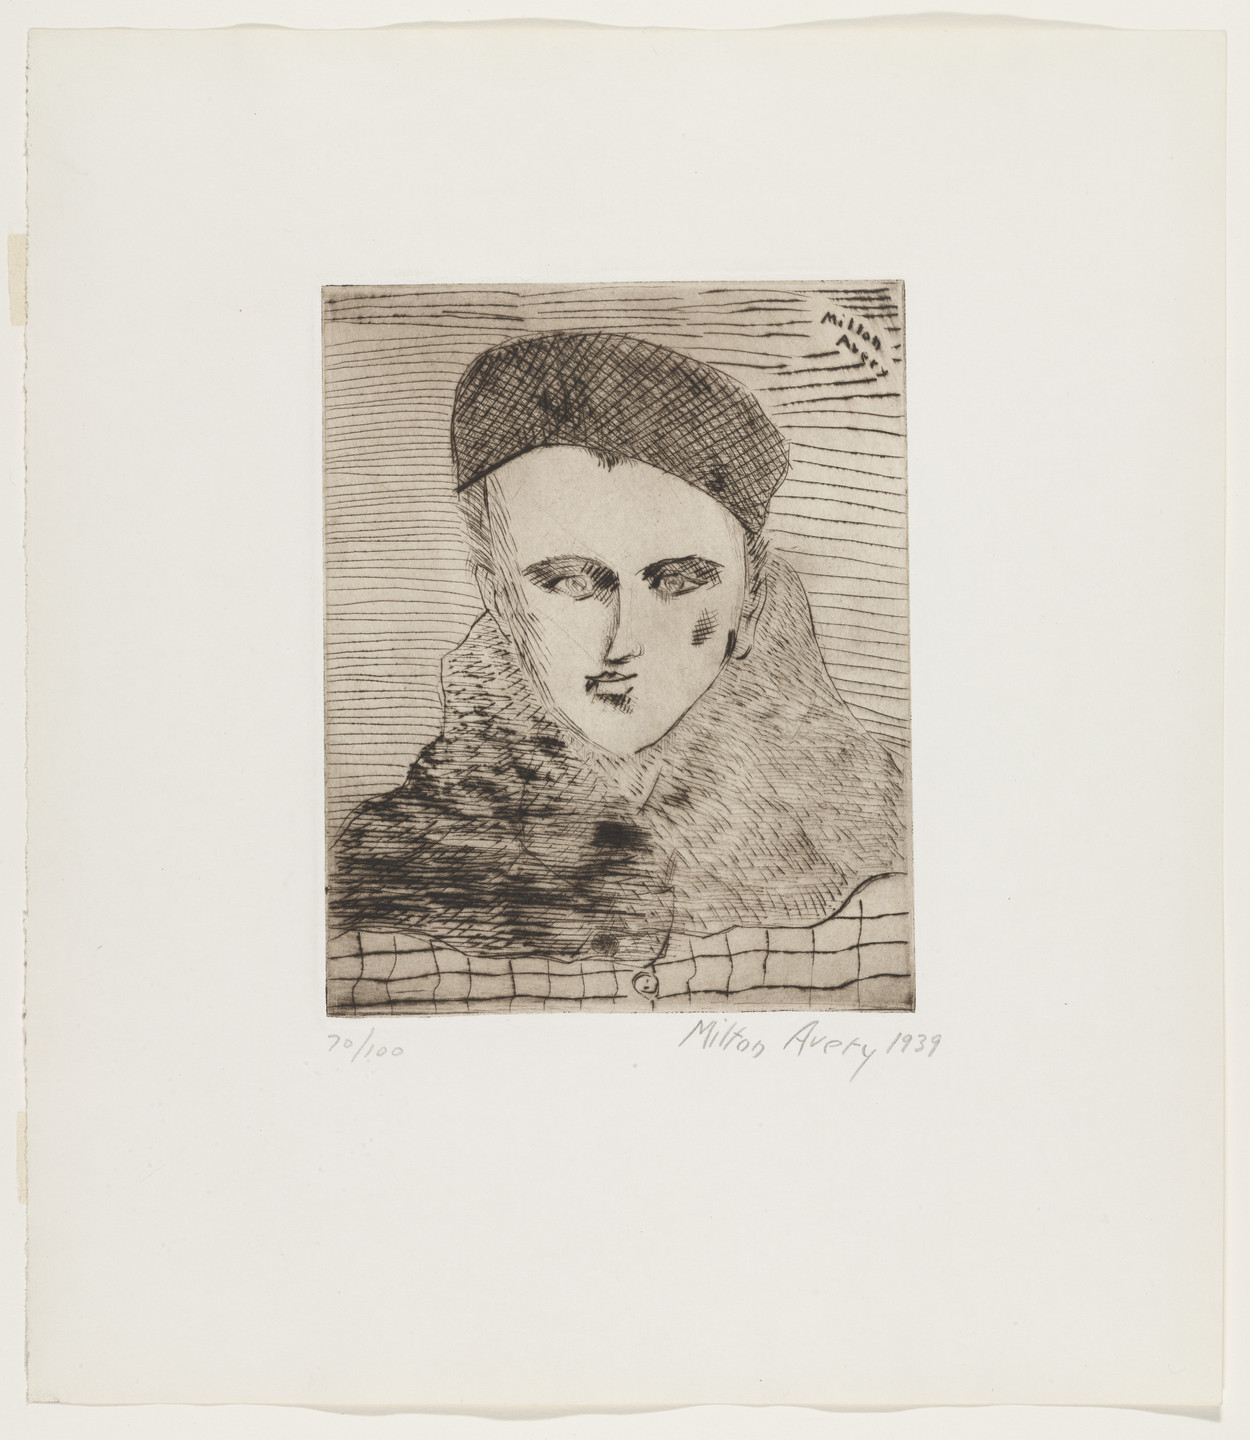 Milton Avery. Sally with Beret. 1939